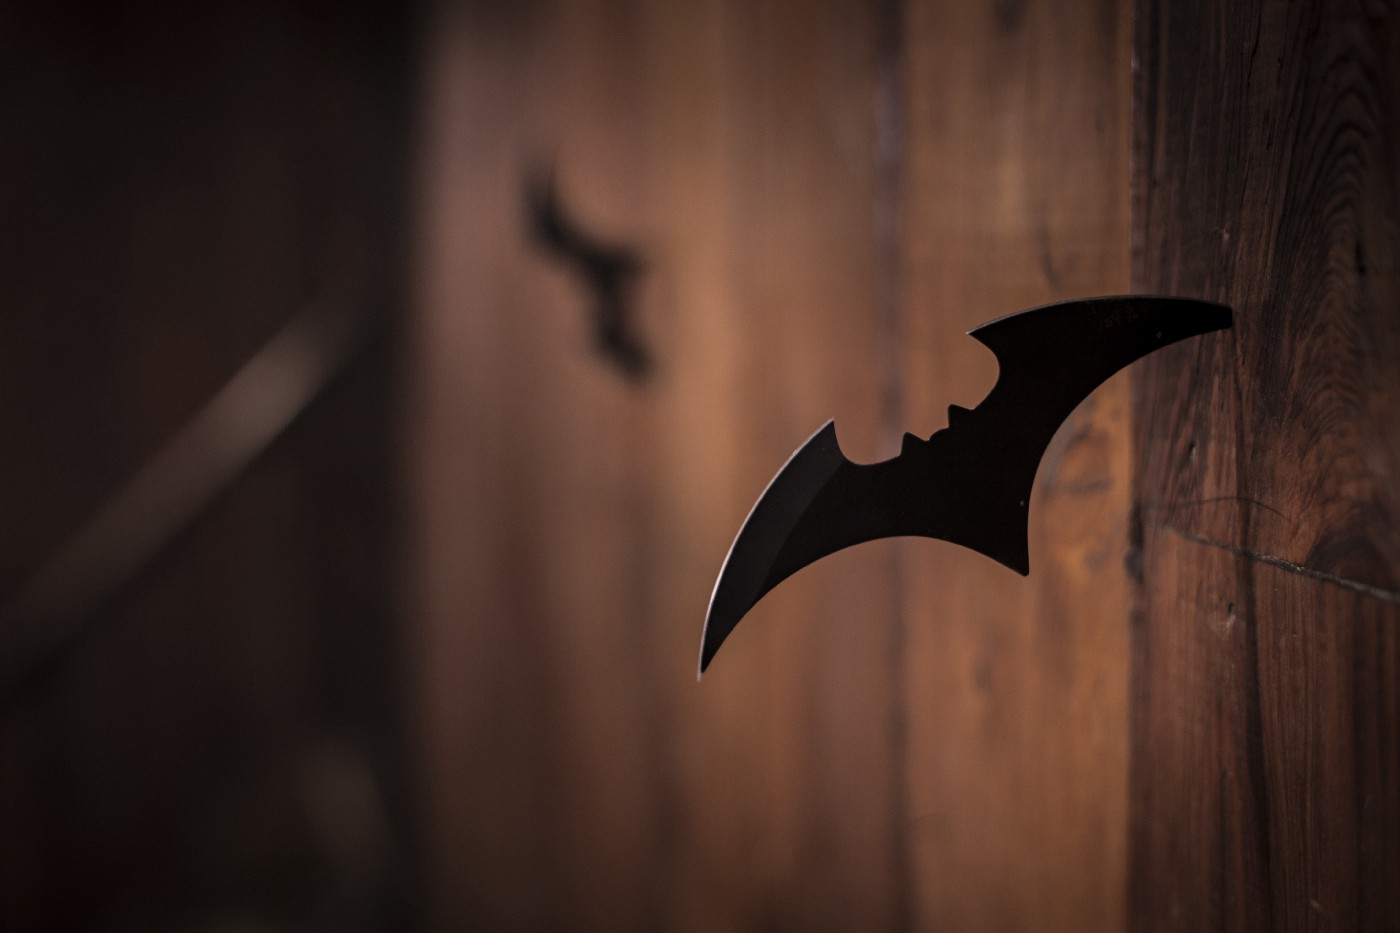 A Batman batarang stuck inside a wooden wall.